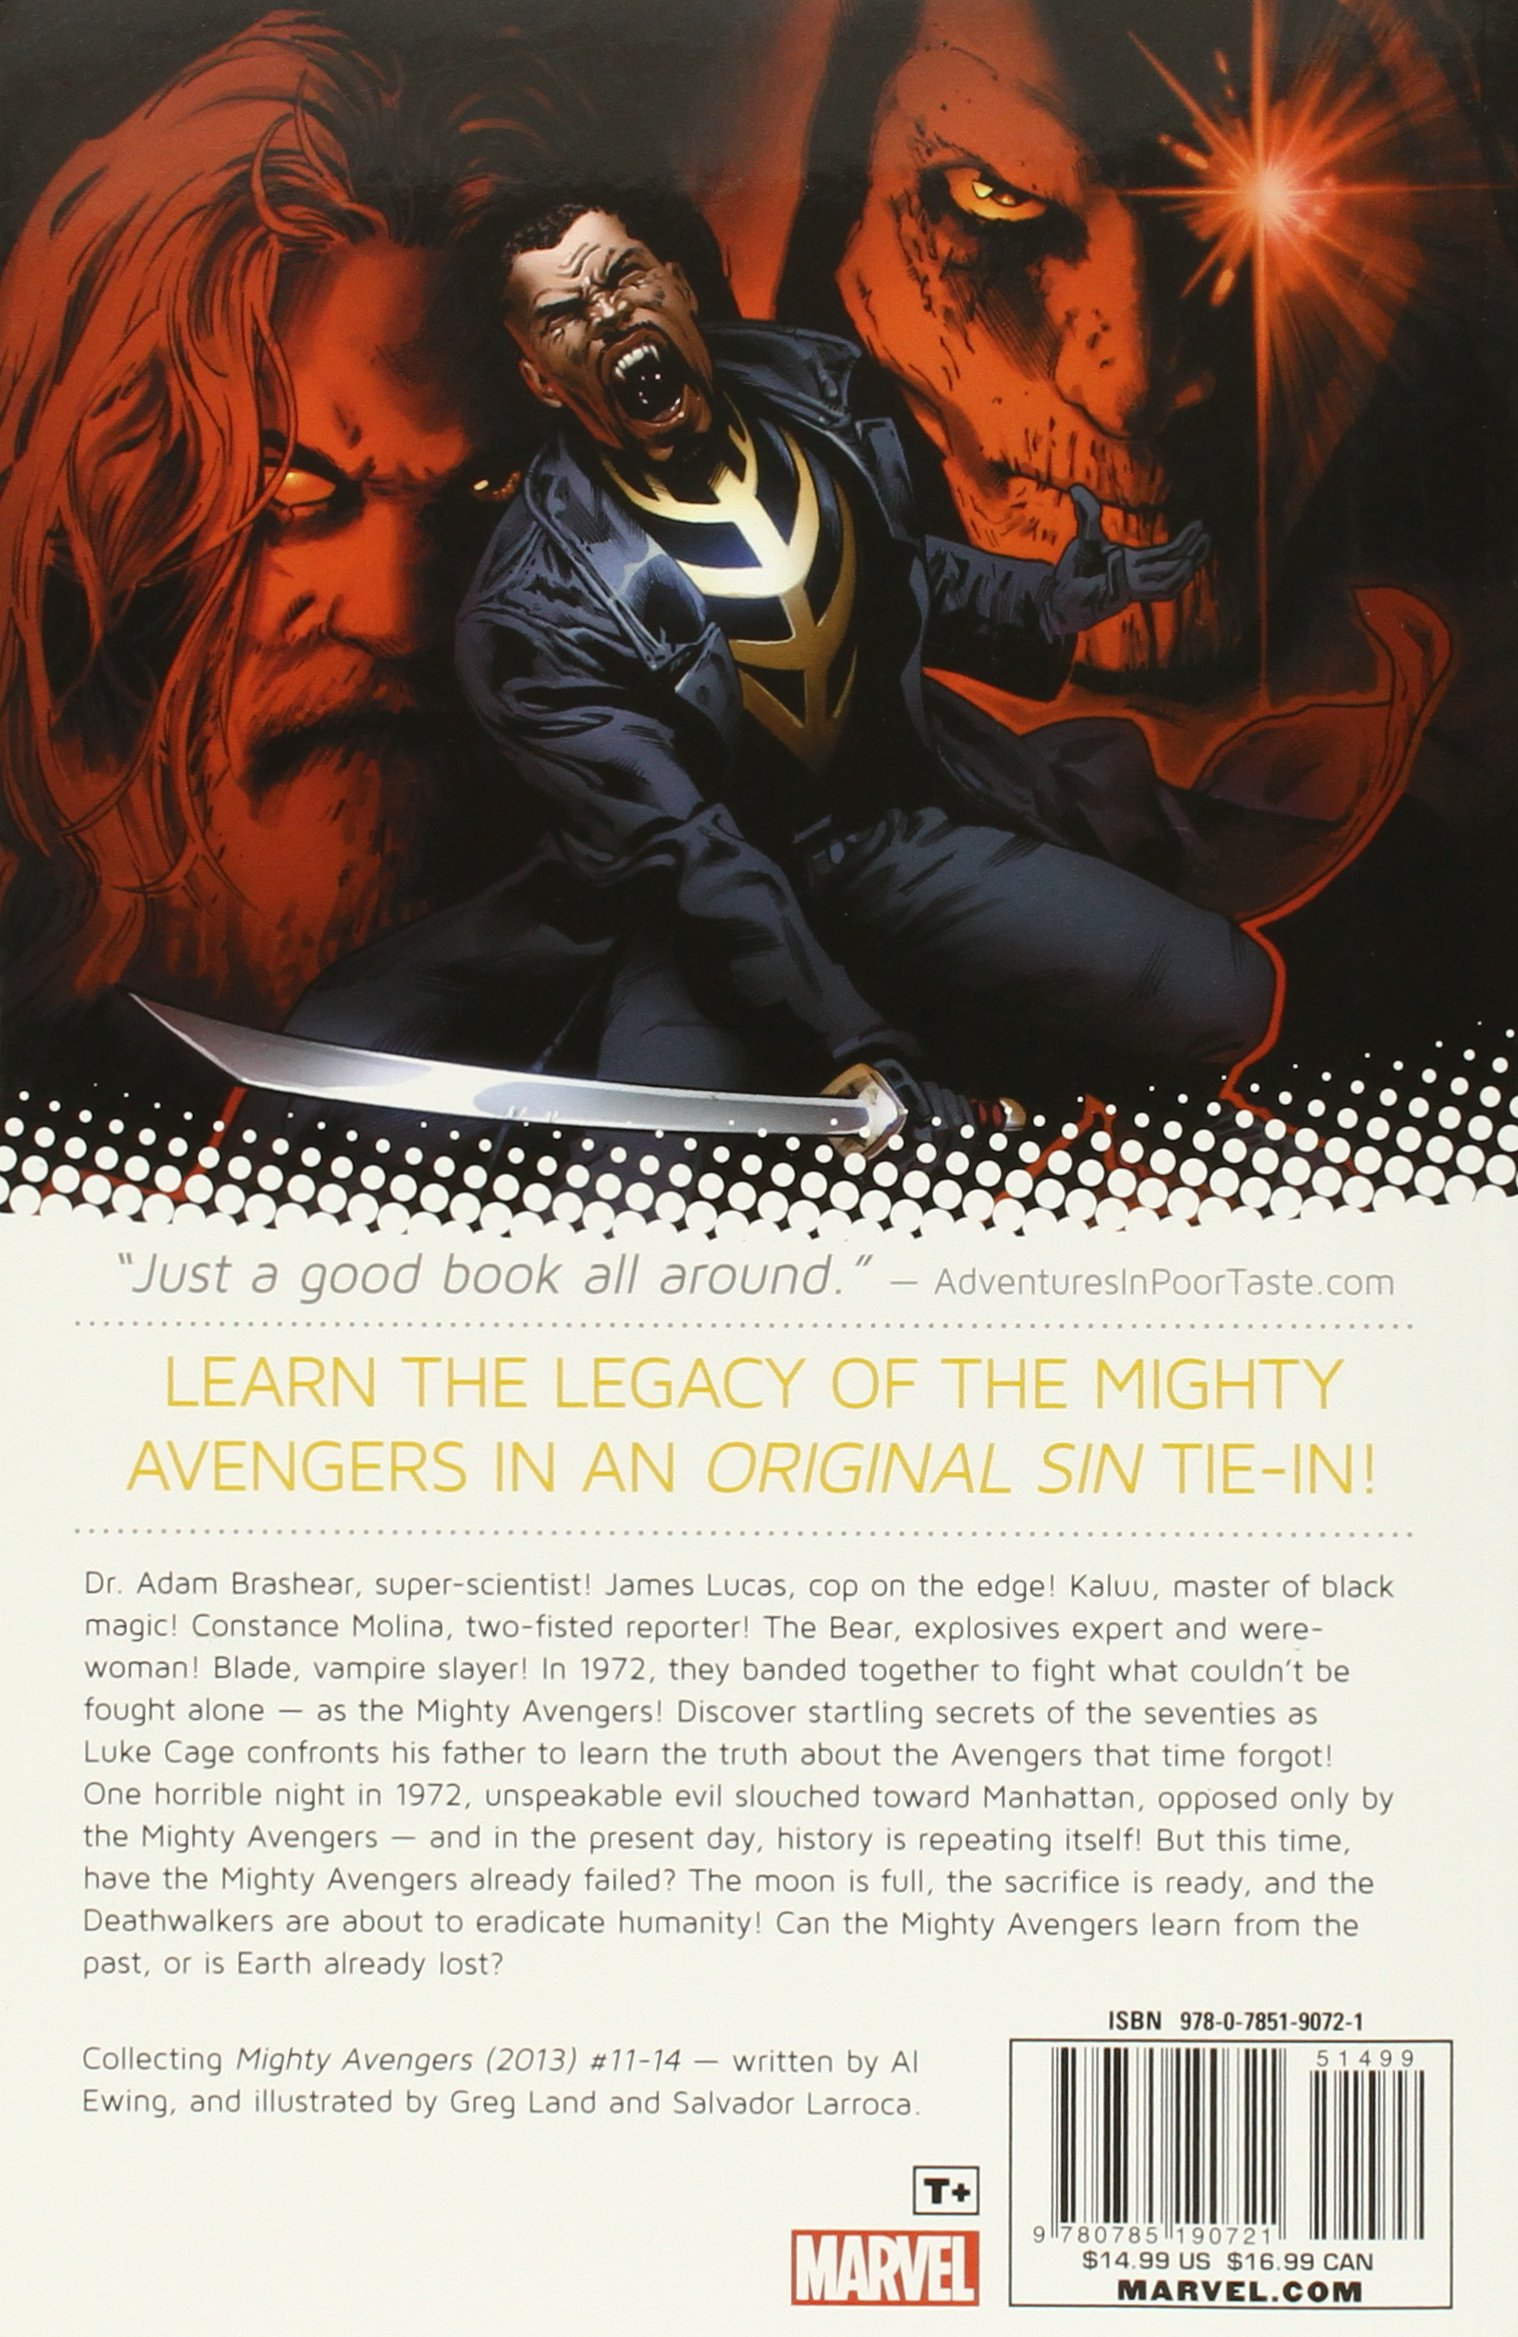 Amazon: Mighty Avengers Volume 3: Original Sin  Not Your Father's  Avengers (9780785190721): Al Ewing, Greg Land: Books